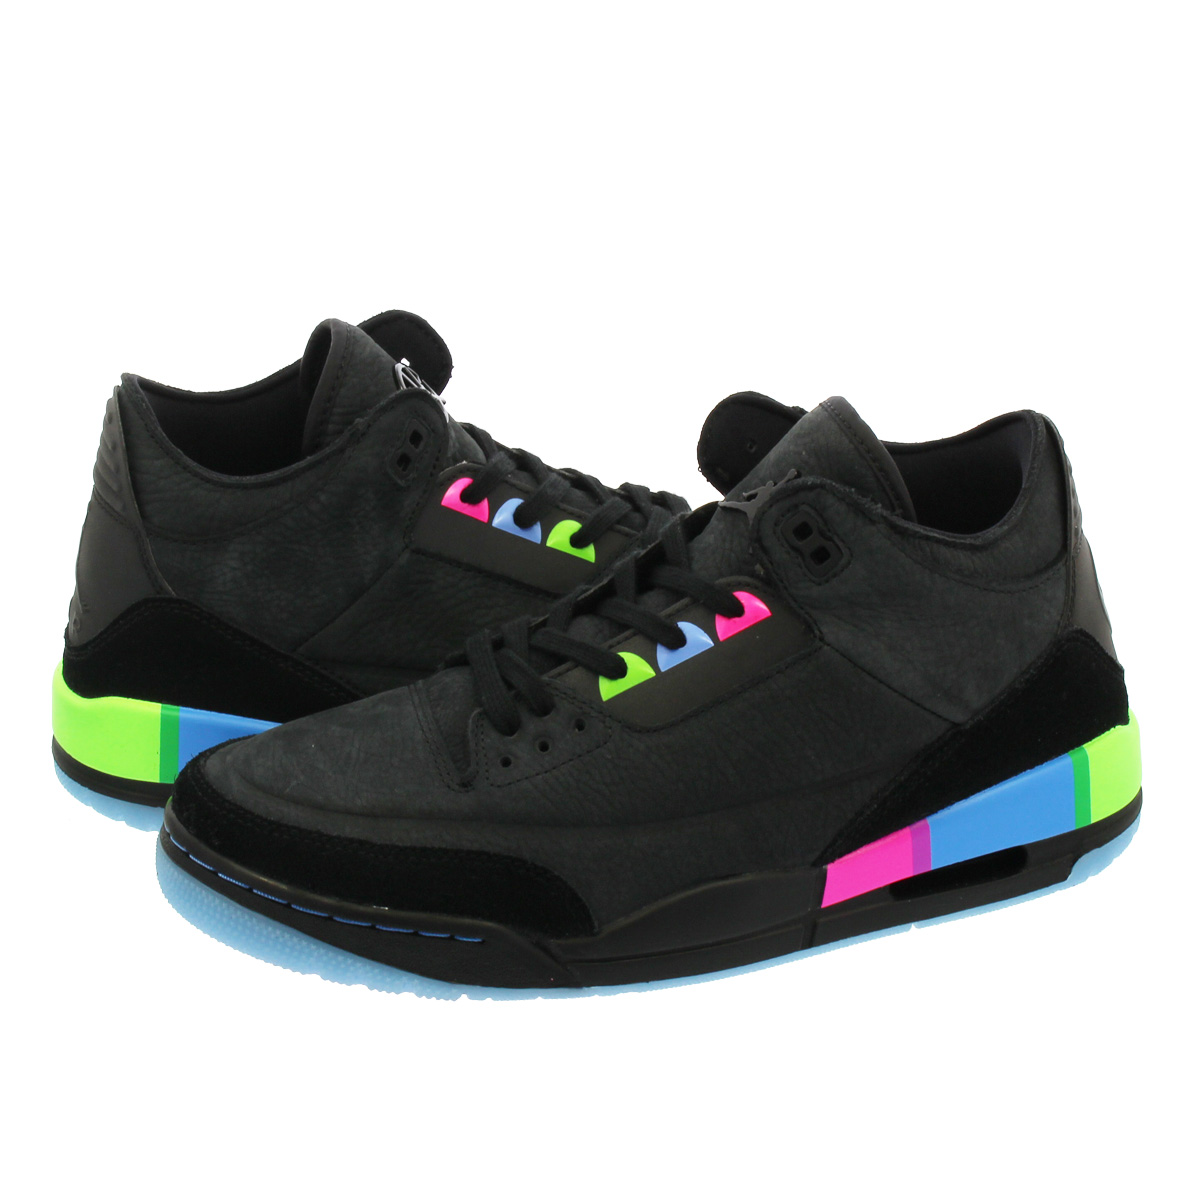 f5e46879bec0 NIKE AIR JORDAN 3 RETRO Nike Air Jordan 3 nostalgic BLACK ELECTRIC GREEN  at9195-001